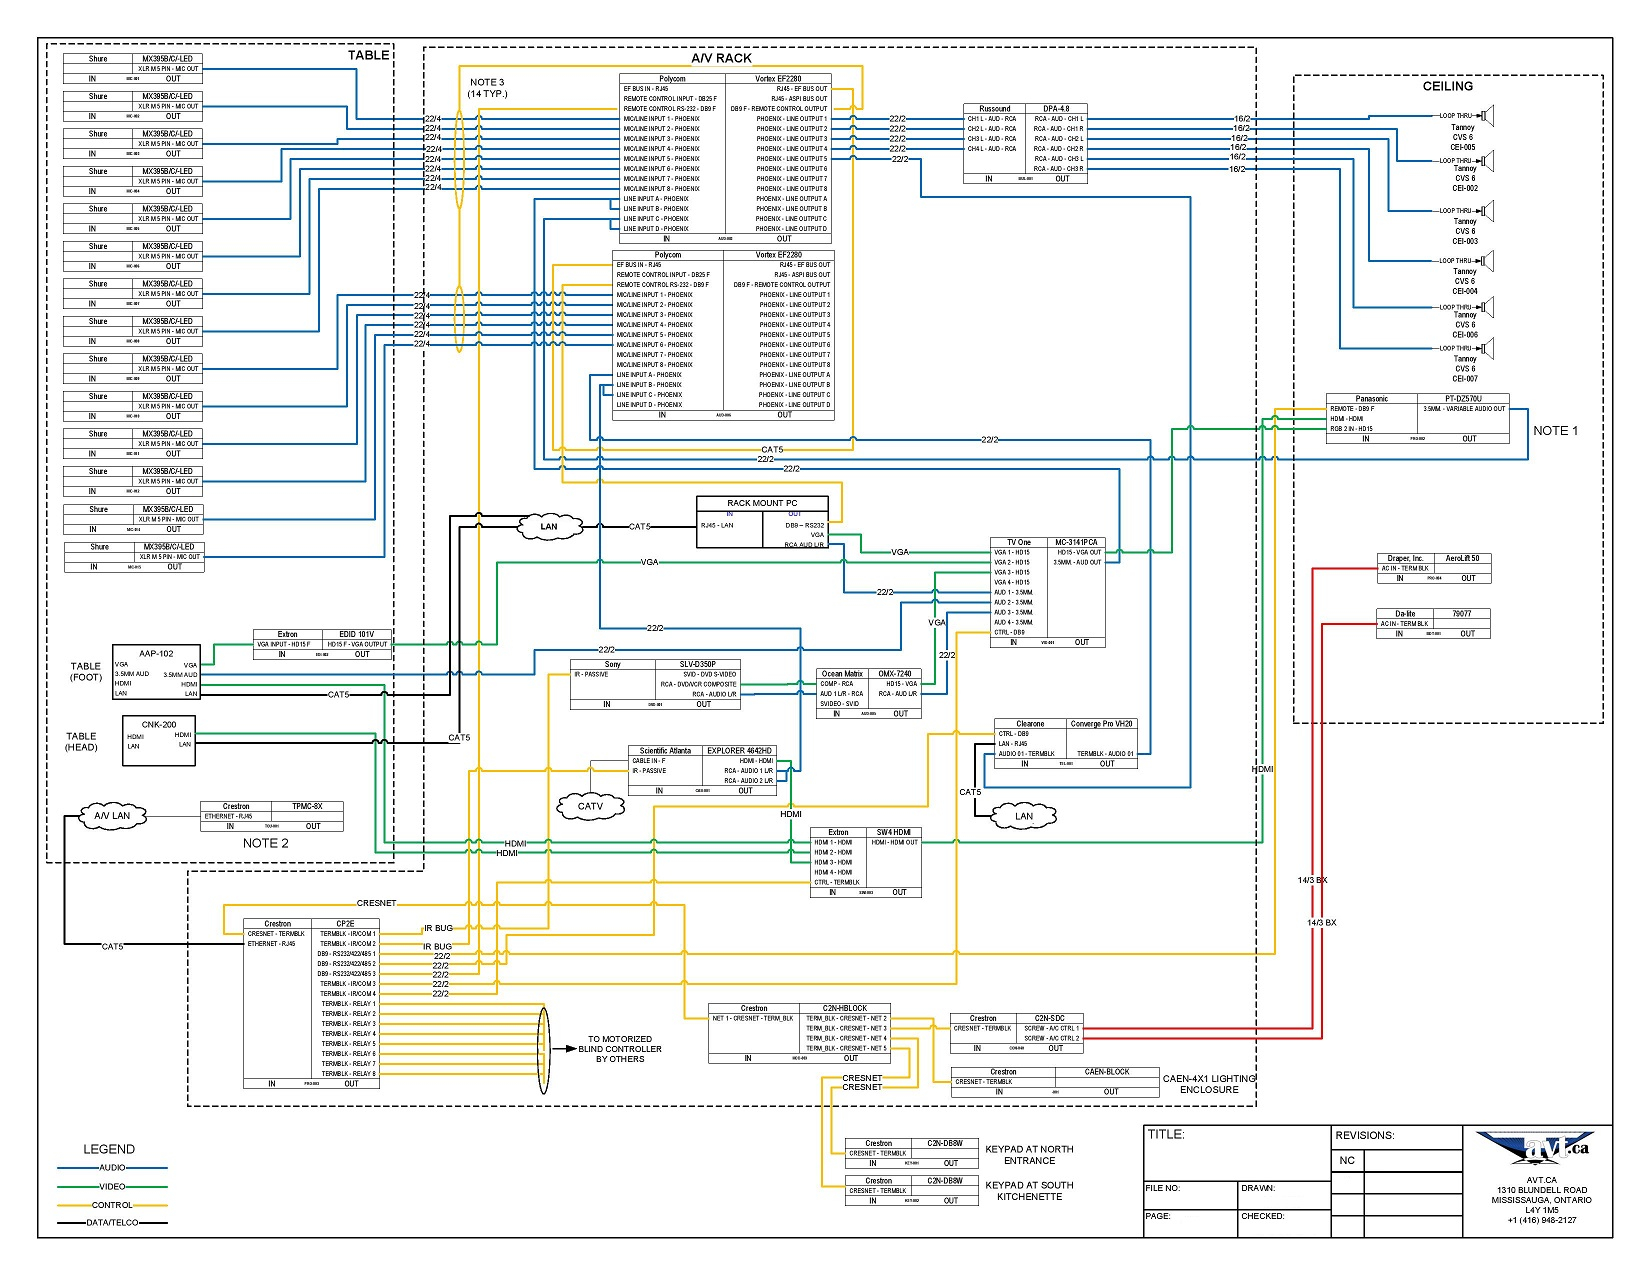 home automation wiring diagram Download-Home Automation Wiring Diagram New Best Clear Electrical Wiring Diagrams for 2 Rooms S 16-m